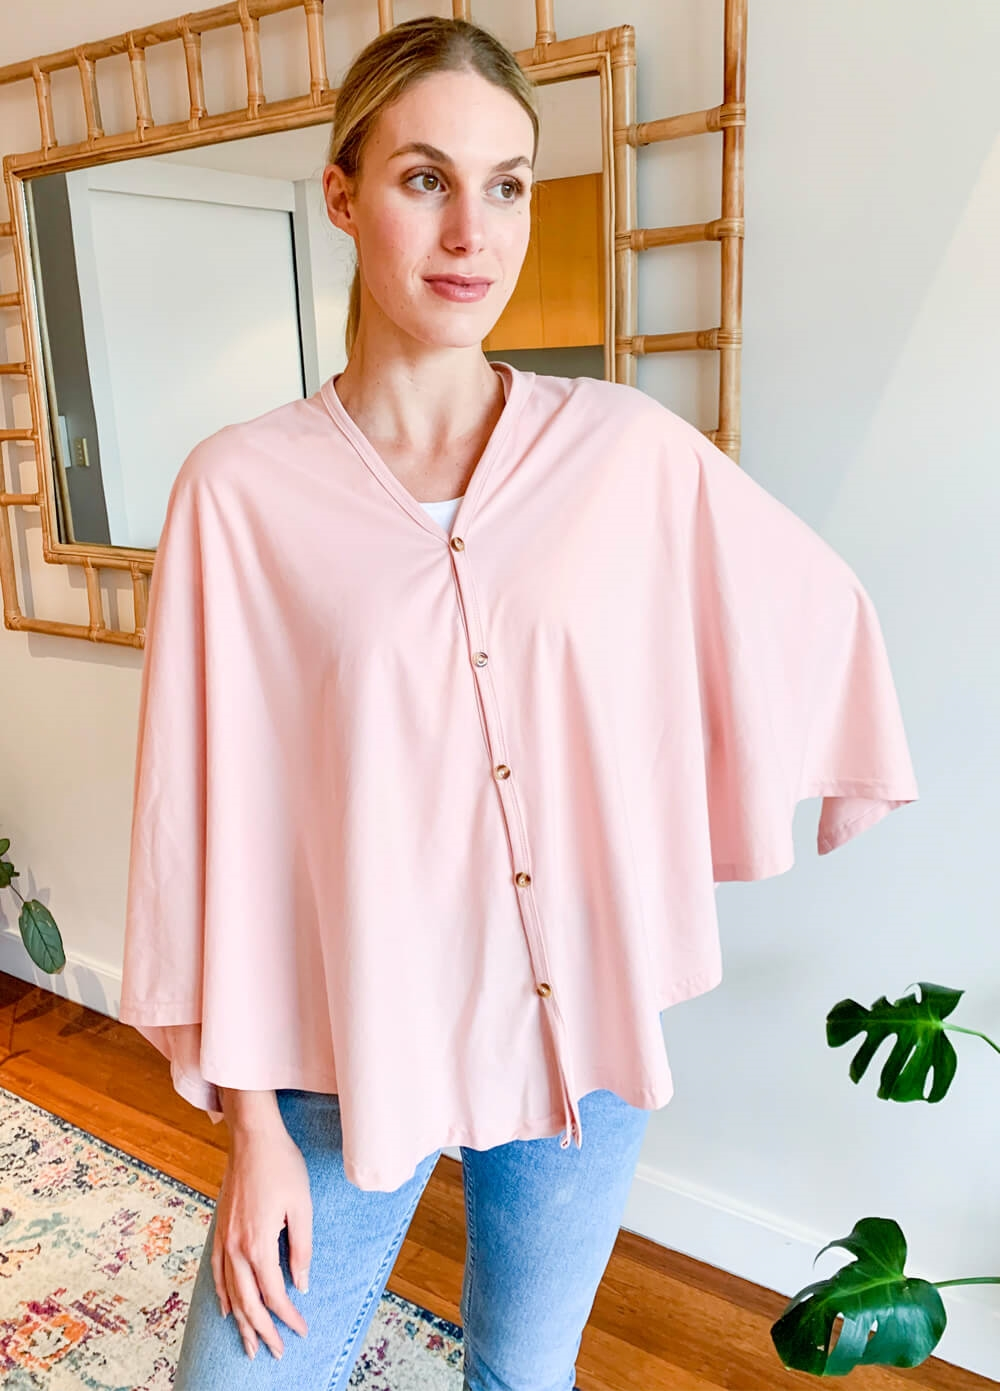 Lait & Co - Nursing Couverture in Pale Pink | Queen Bee